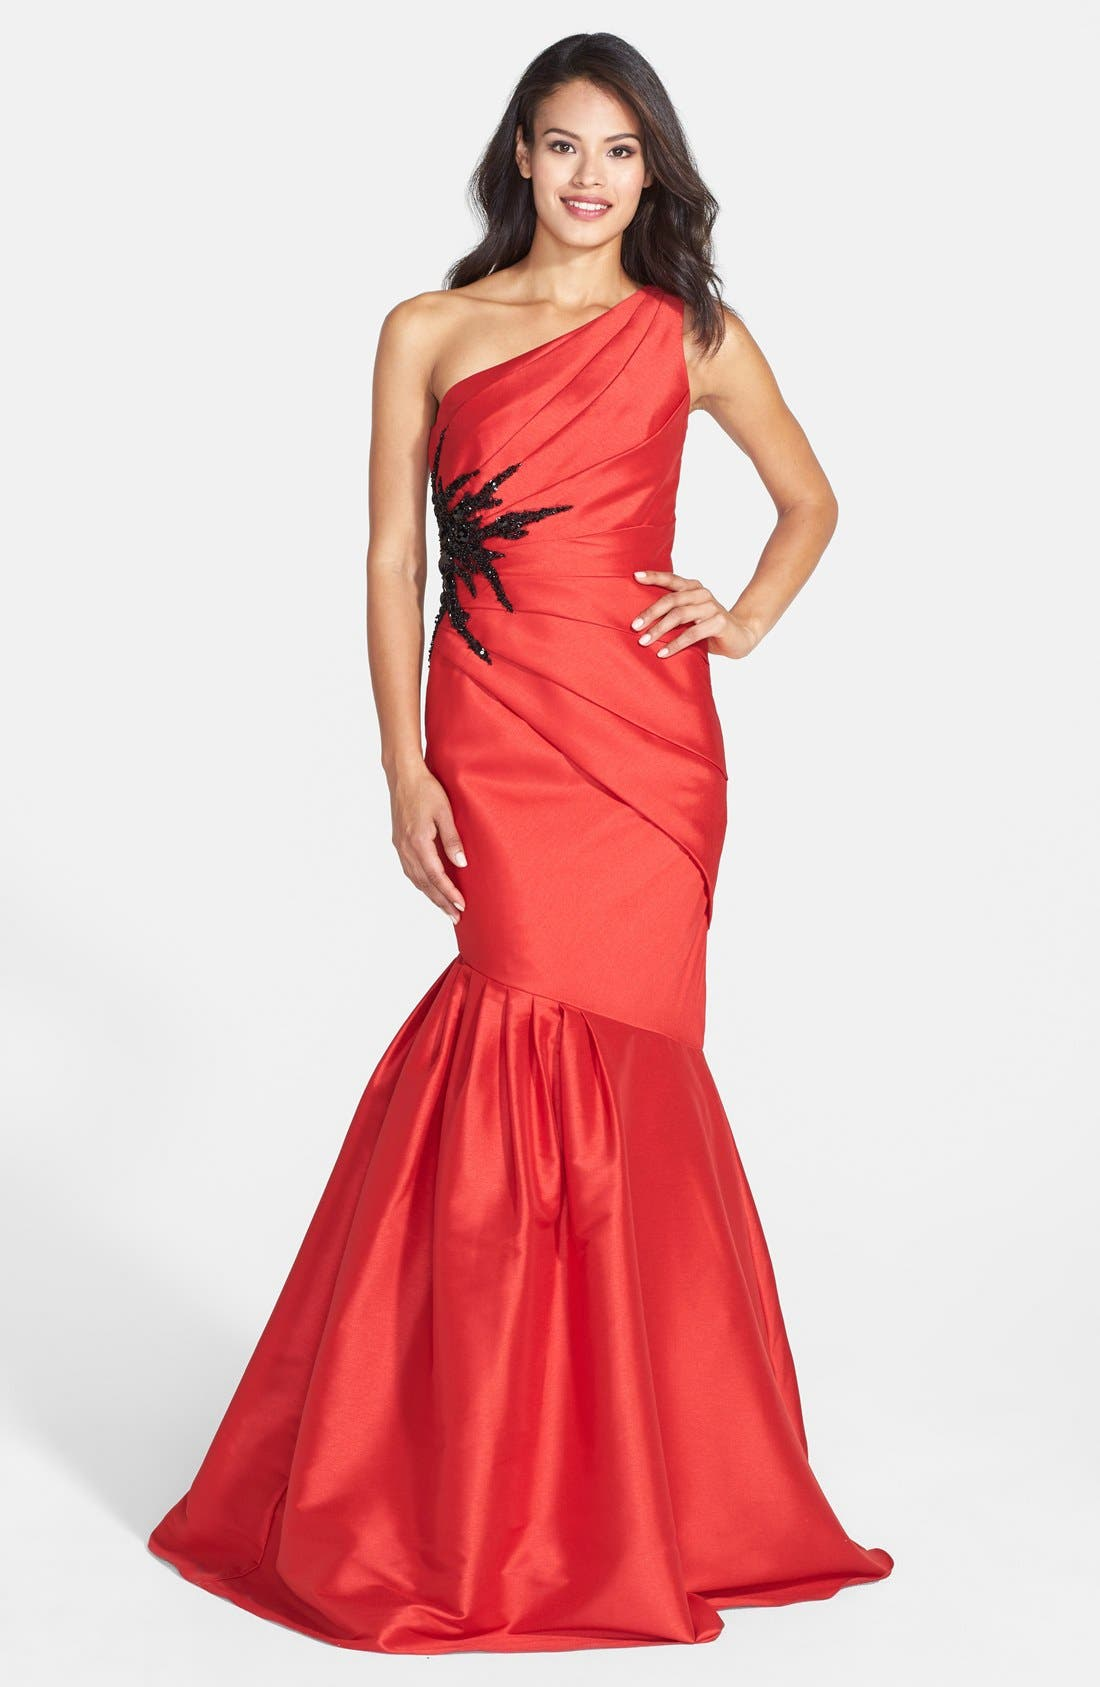 Alternate Image 1 Selected - ML Monique Lhuillier Embellished One-Shoulder Faille Mermaid Gown